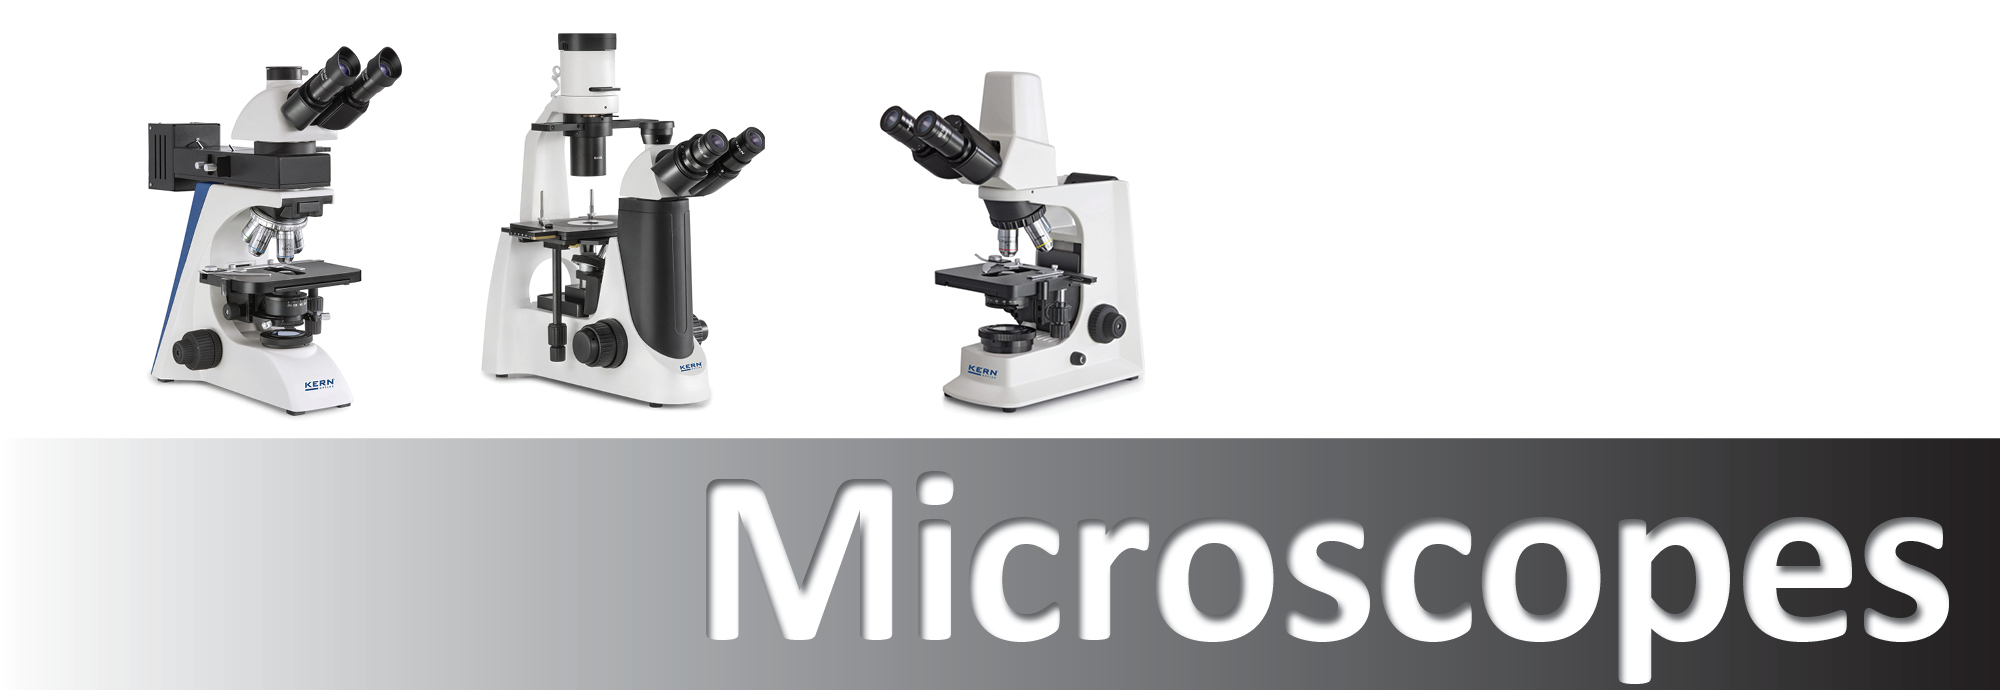 Huge range of microscopes from compound to metrology